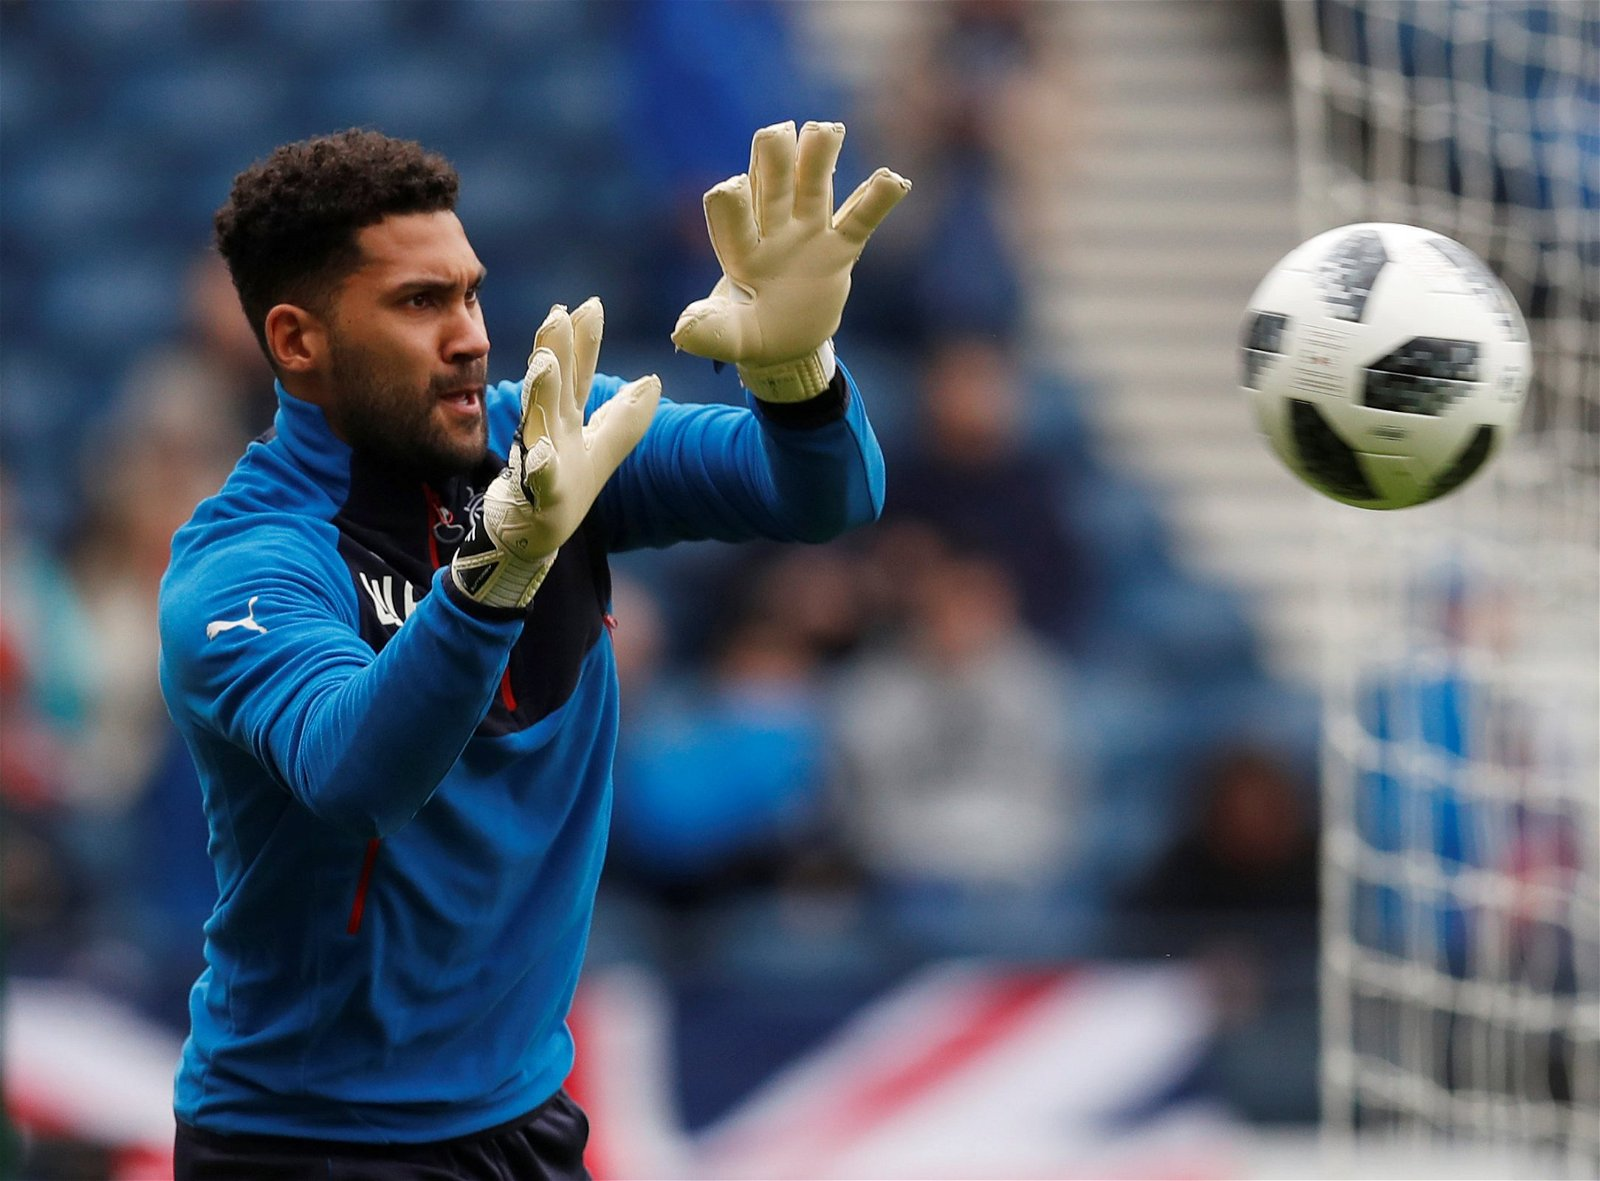 Wes Foderingham warms up ahead of a Rangers match